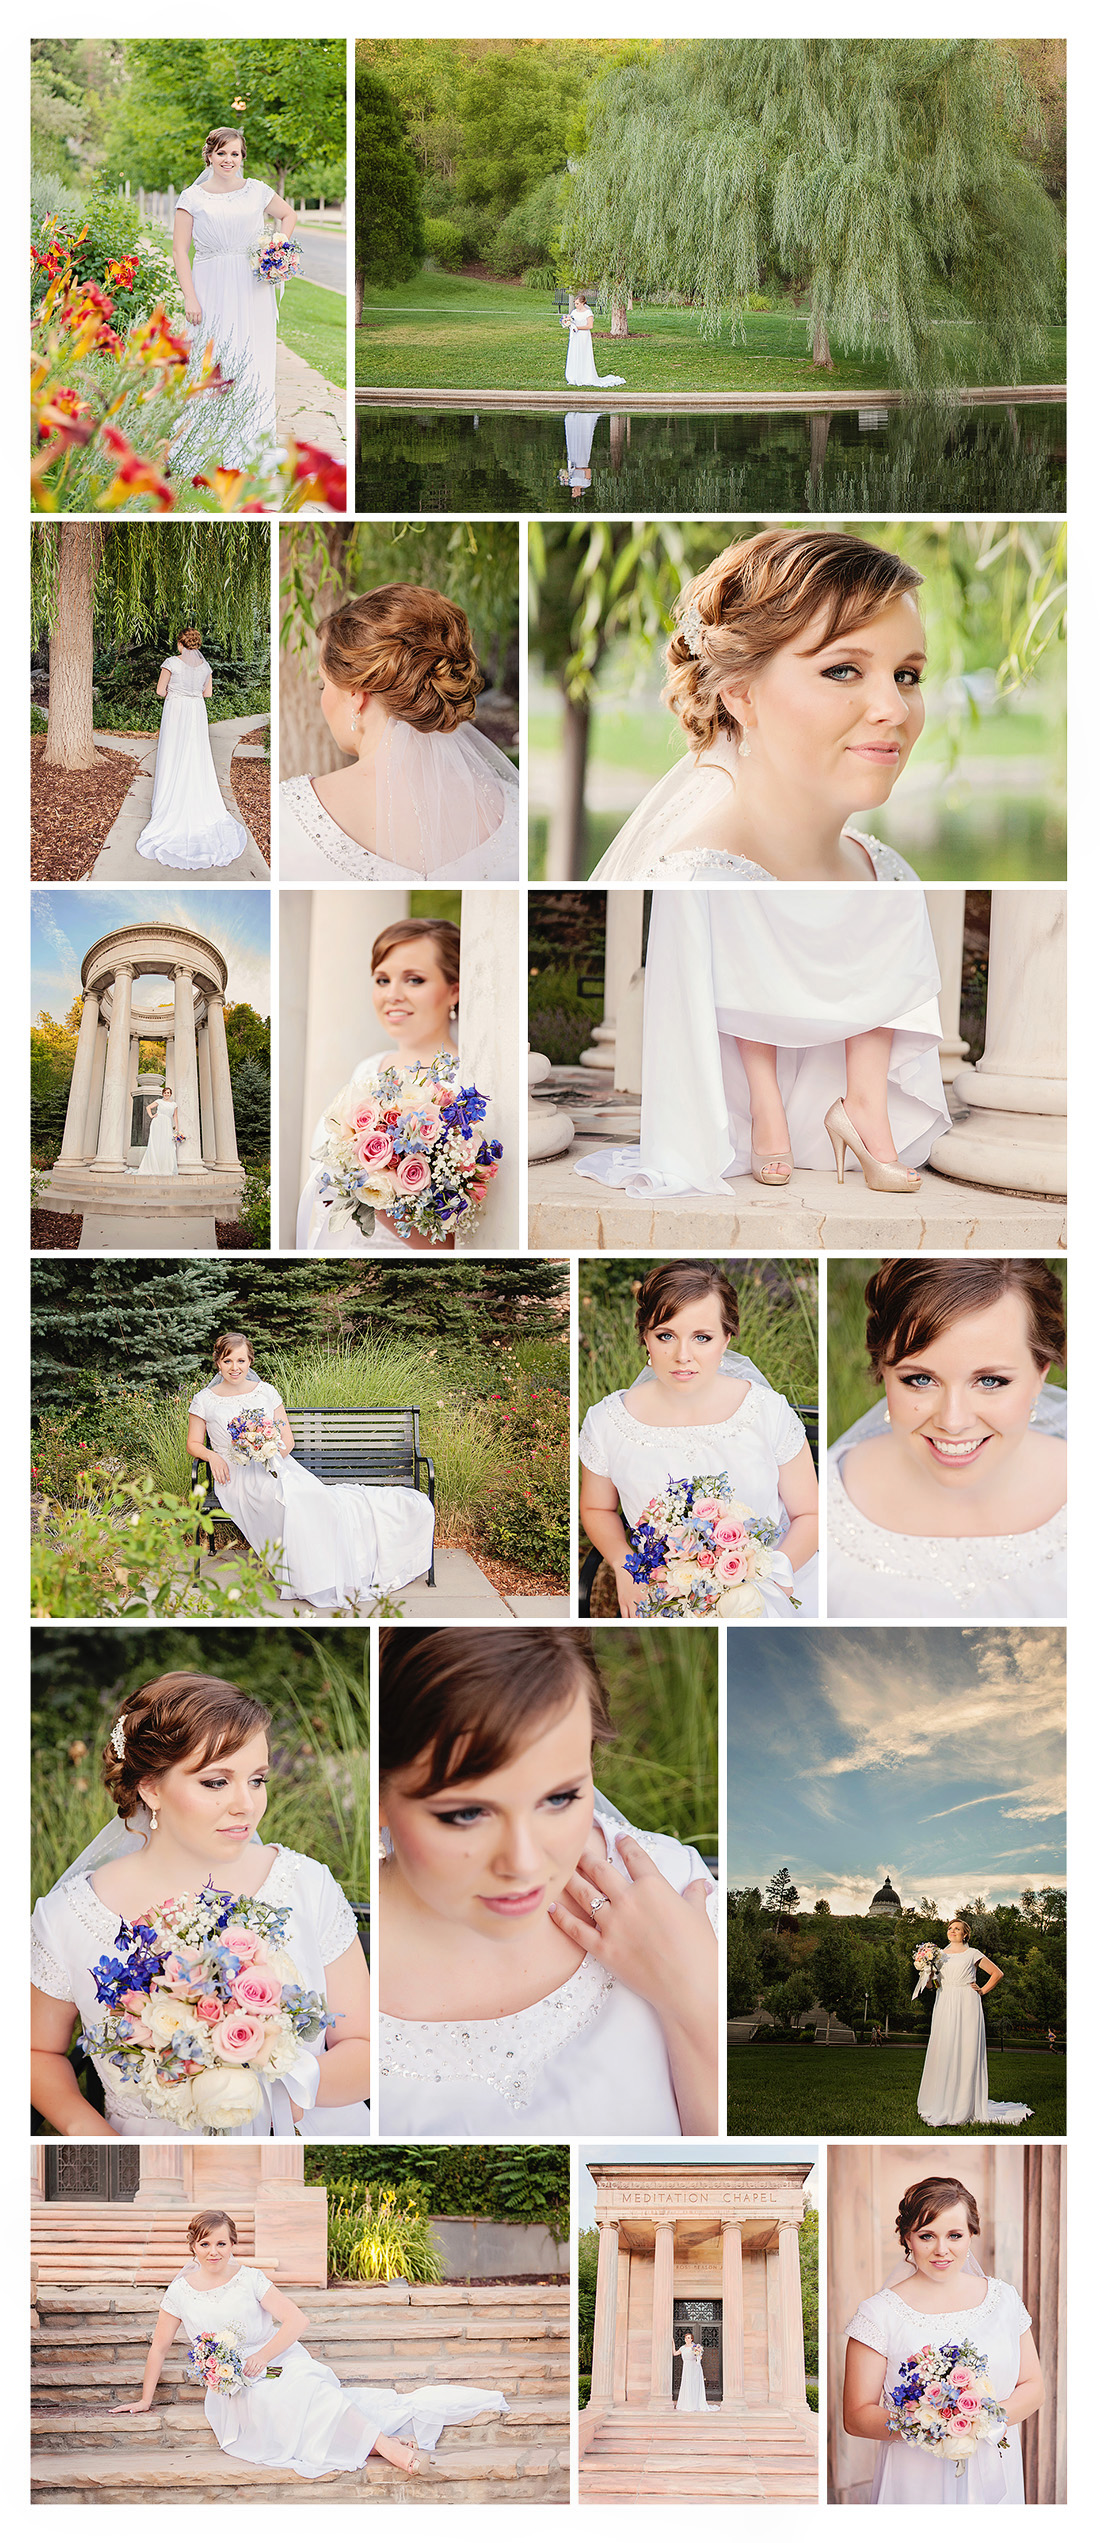 rachel-nielsen-photography, bridal photographer, utah wedding photographer. memory grove